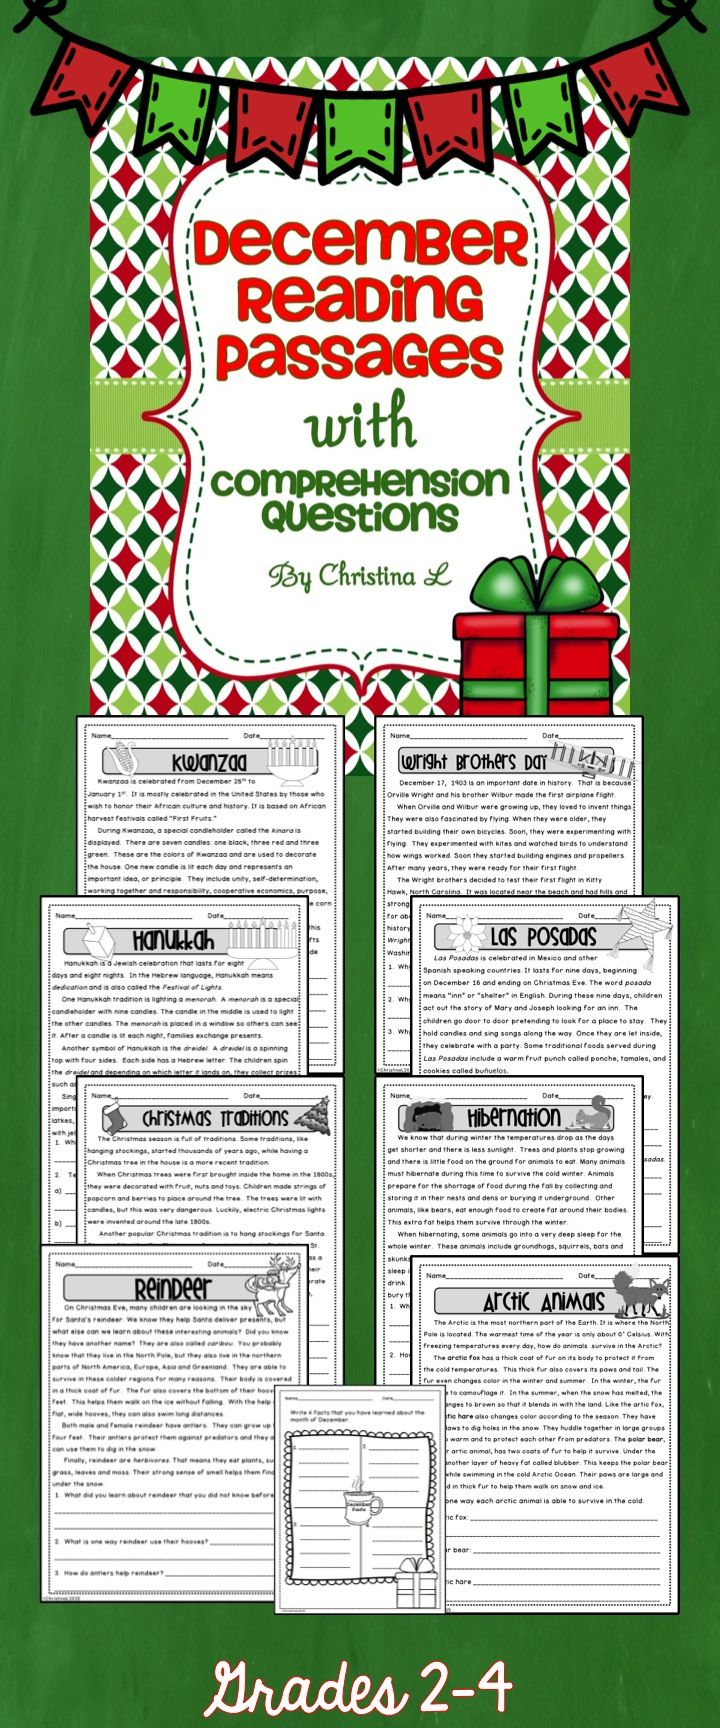 Fun non-fiction December reading passages! Great for warm ups, homework or reading groups. Reading include Kwanzaa, Las Posadas, Hanukkah, Christmas Traditions, Reindeer, Arctic Animals, Wright Brothers Day, Hibernation $